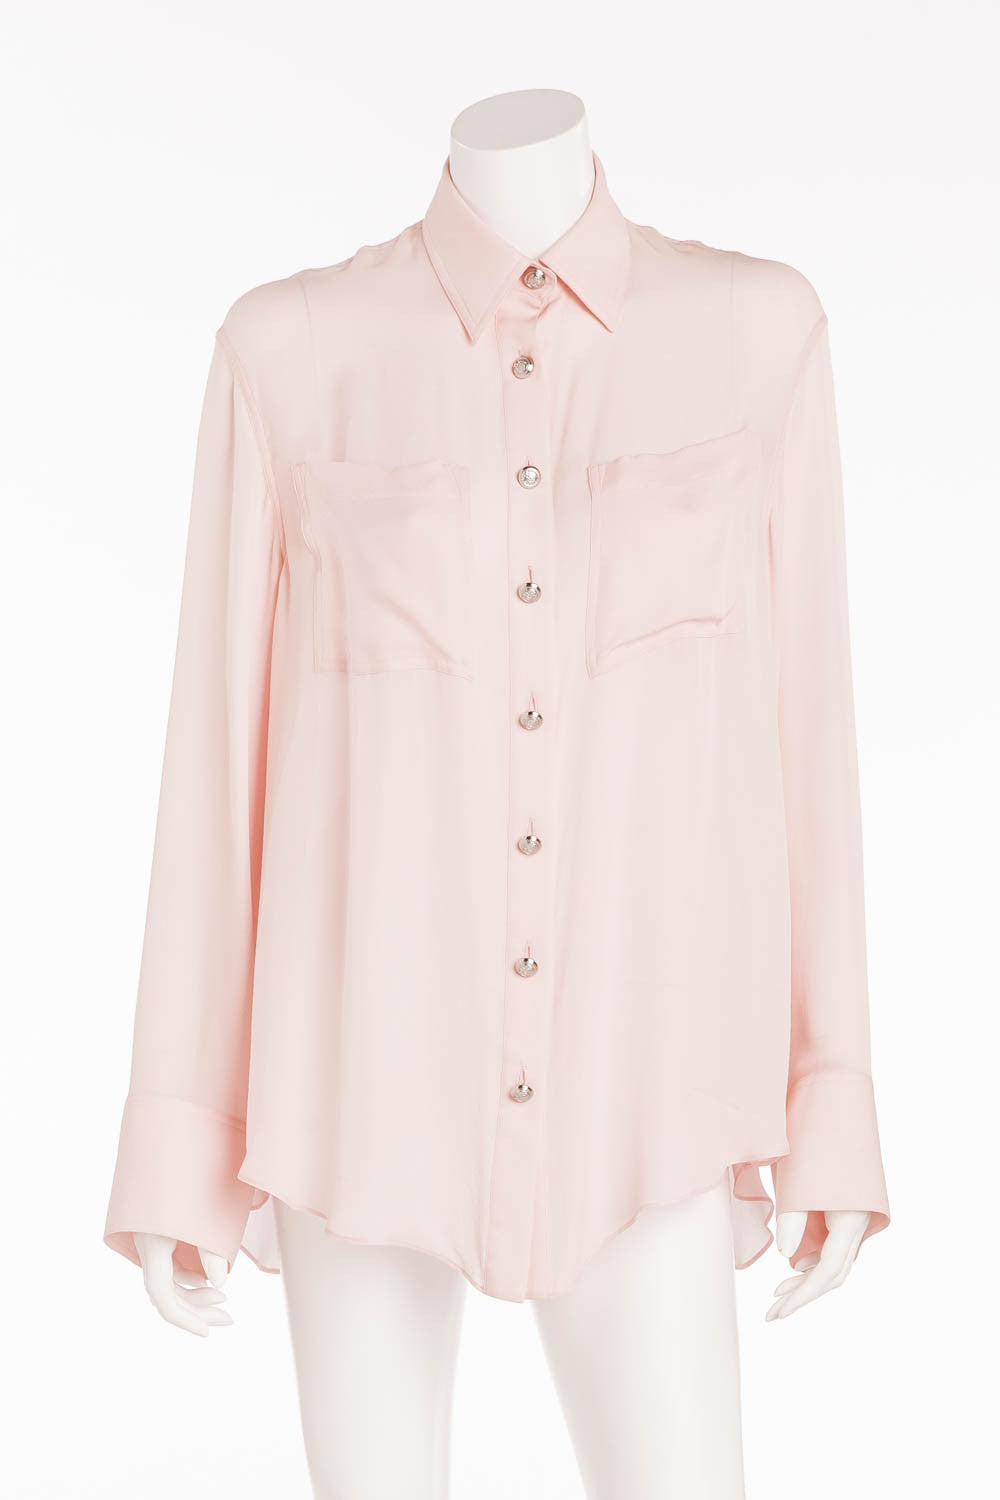 Balmain - Brand New Long Sleeve Pink Button Up Shirt - FR 38